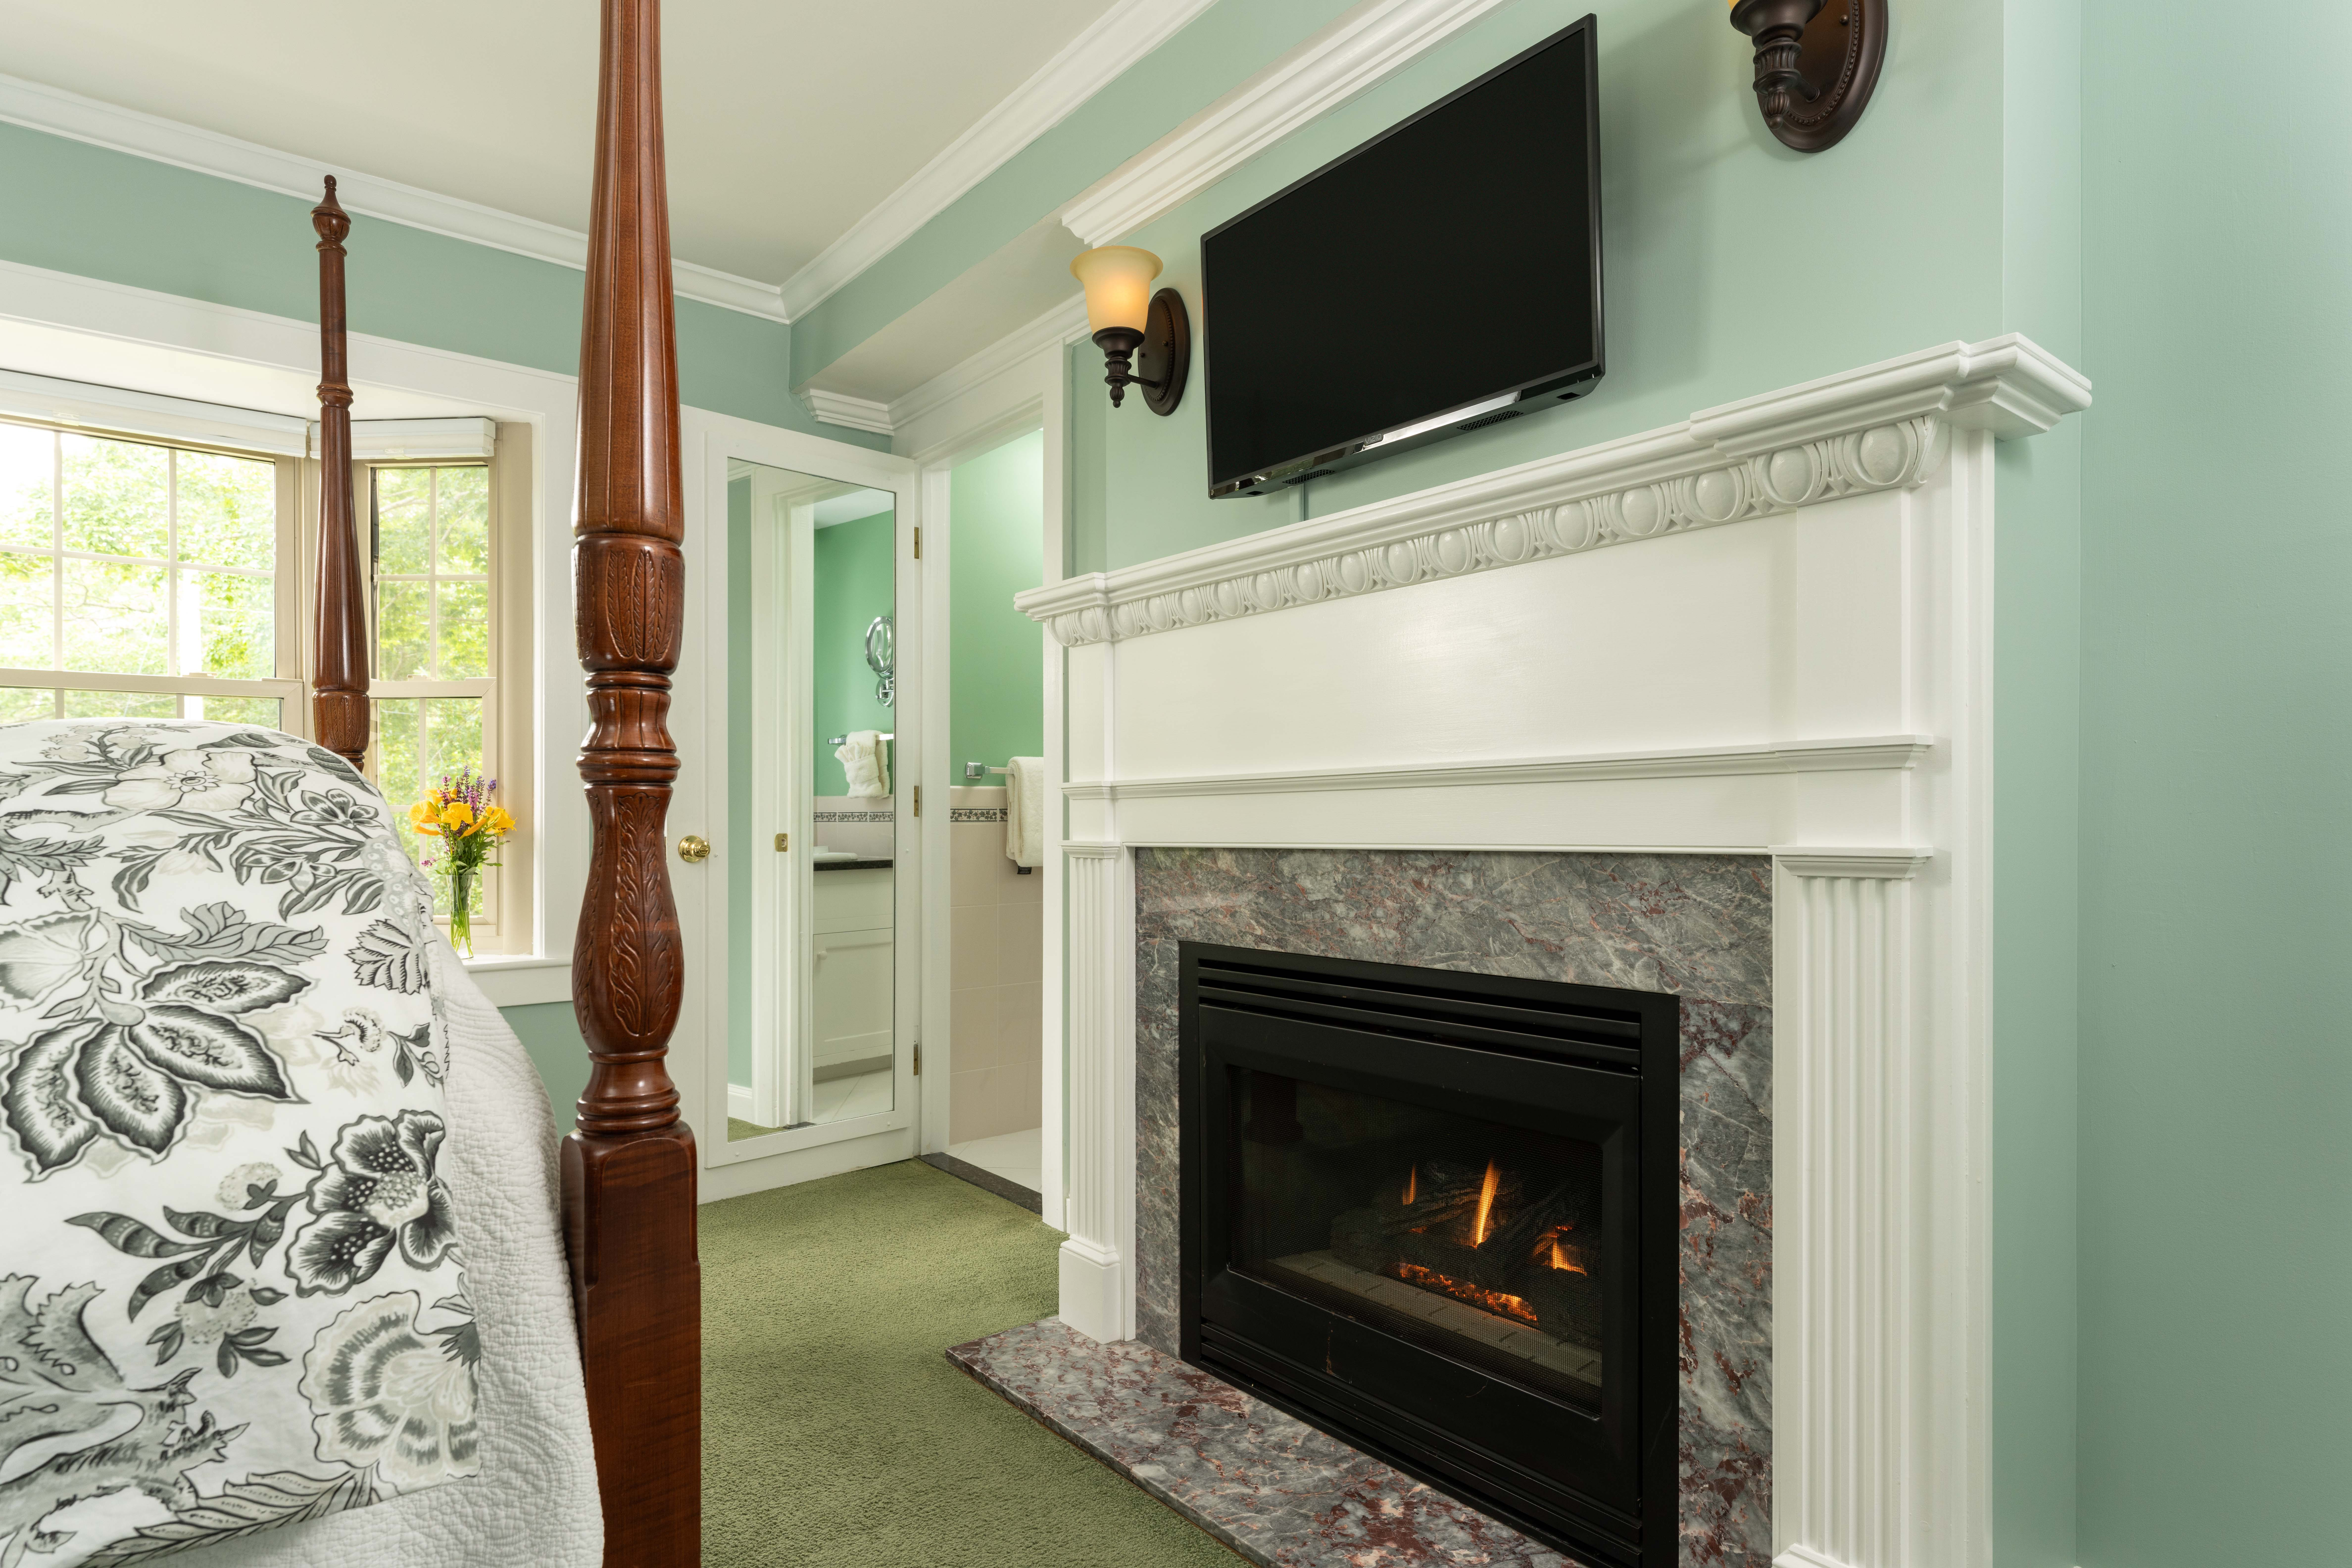 Gas fireplace framed by marble tile